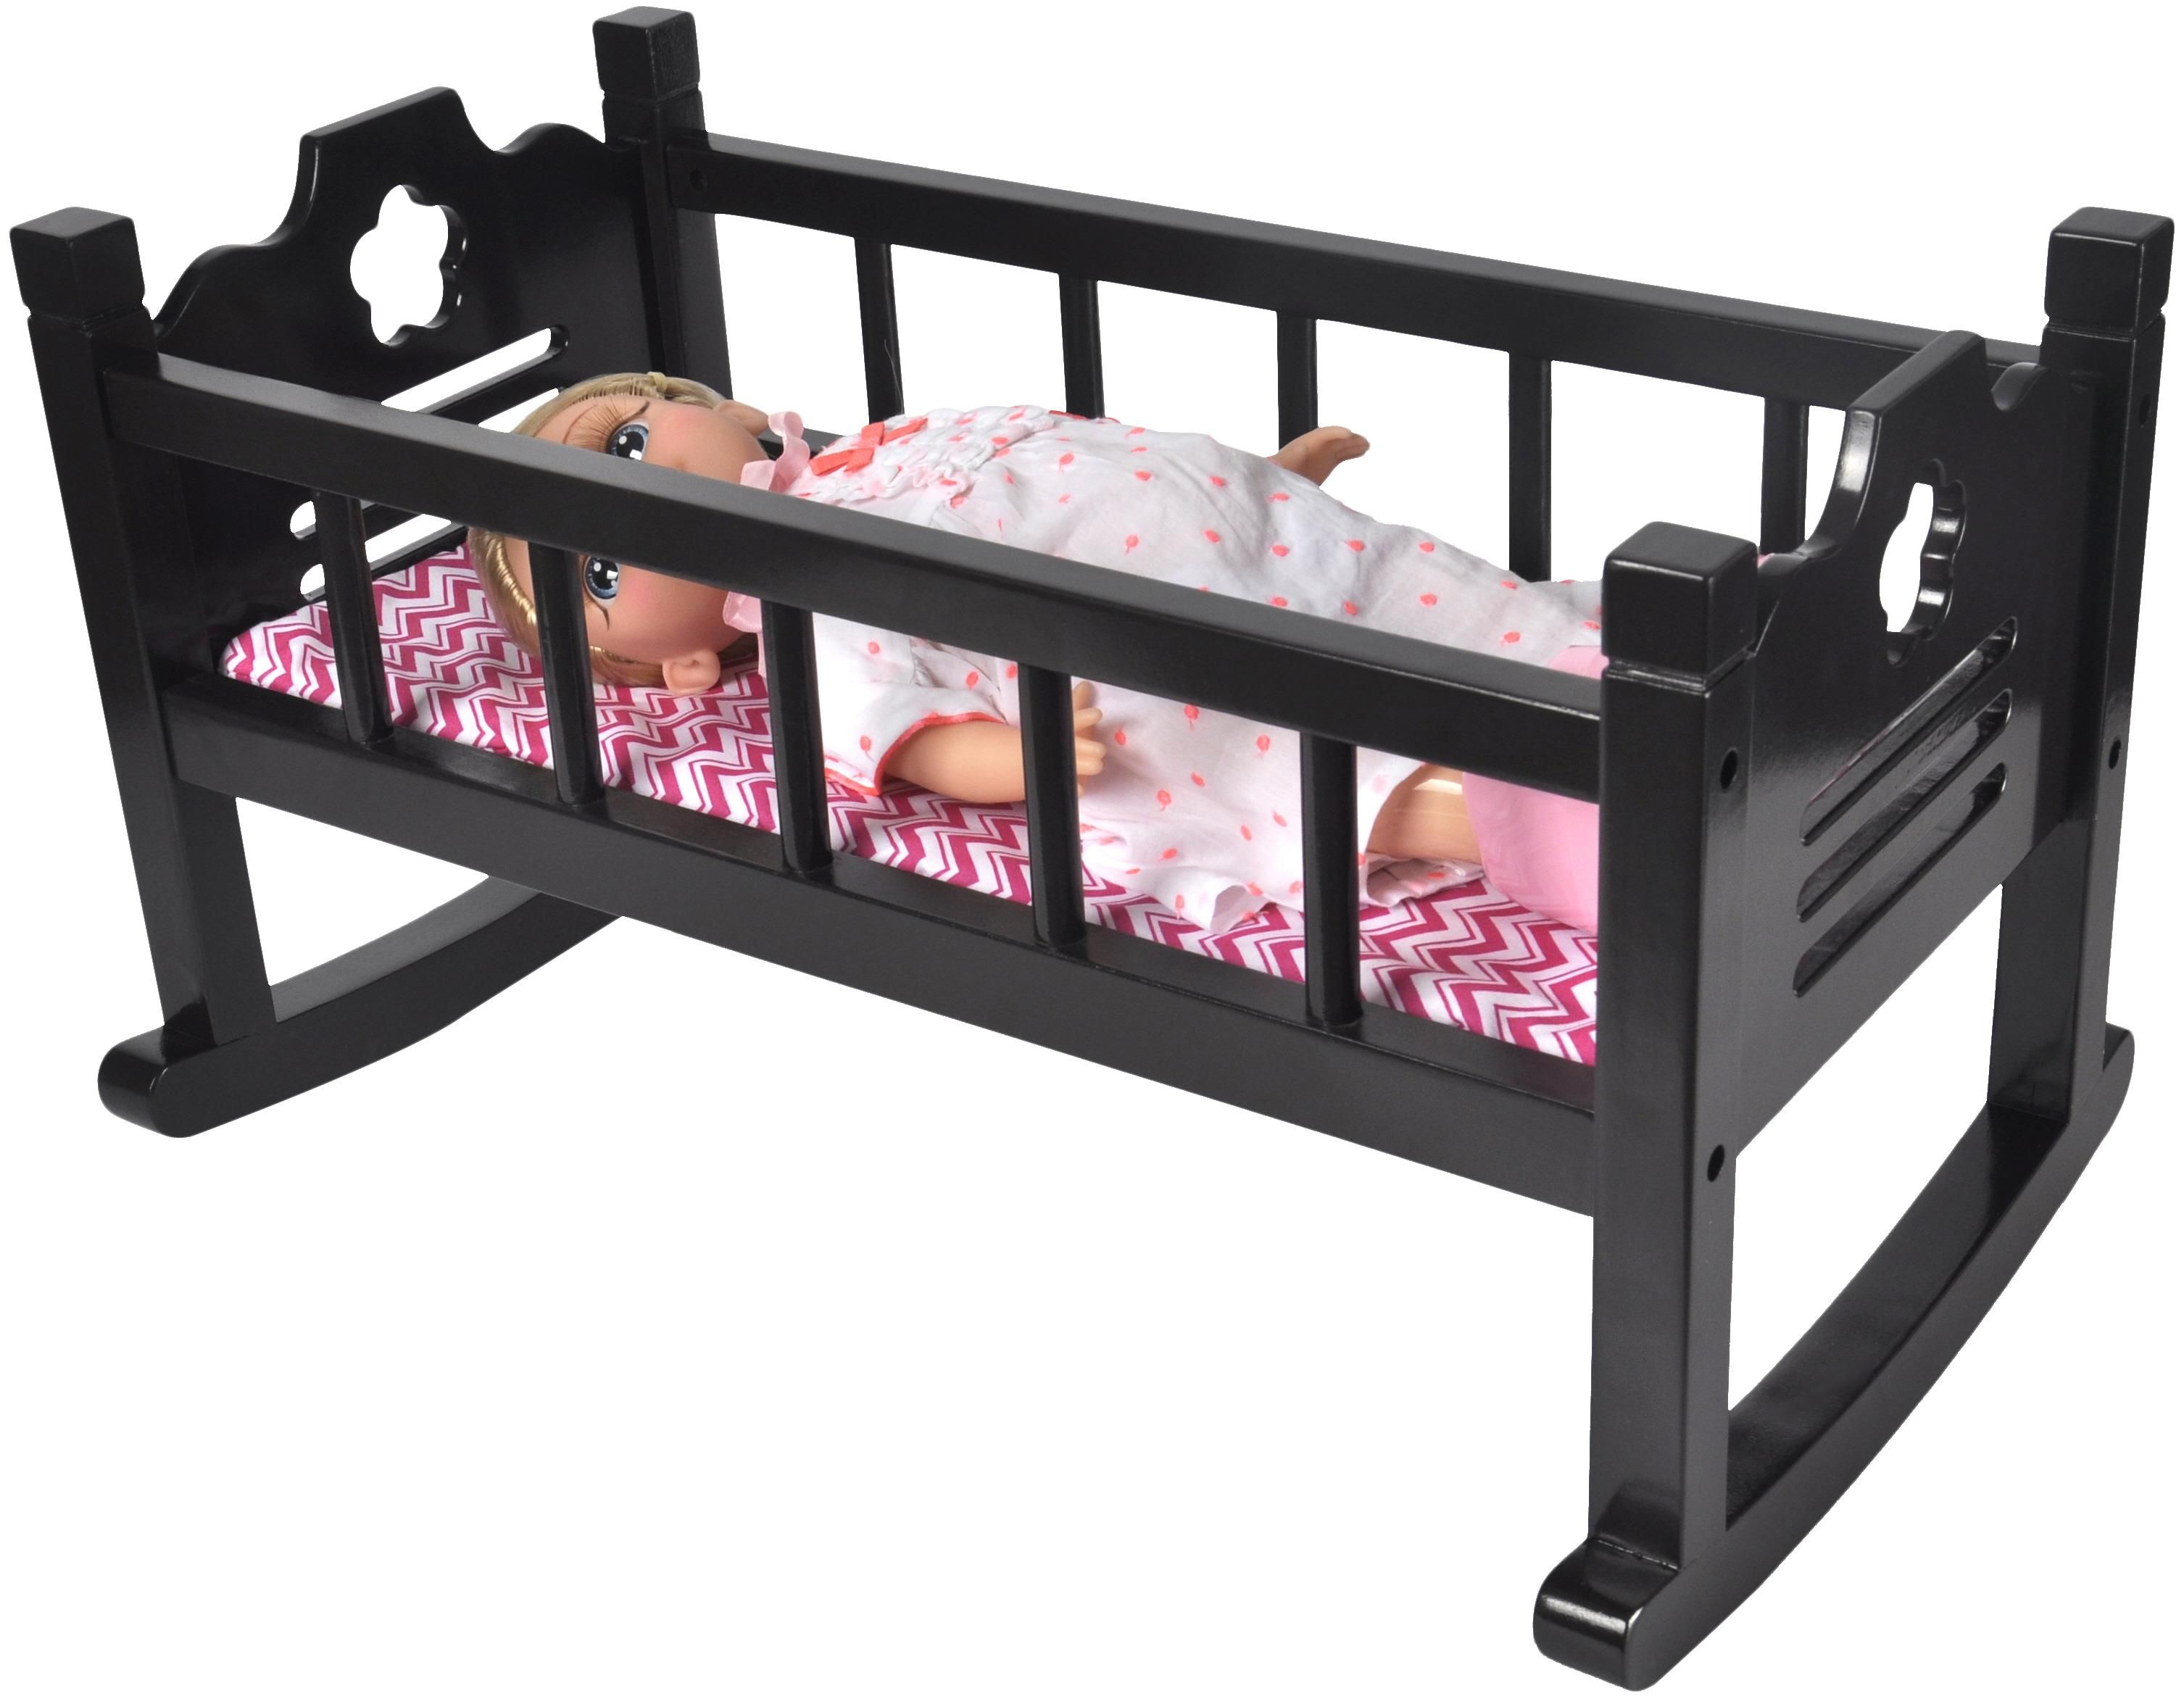 Wooden Baby Doll Cradle 29.99 Use promo